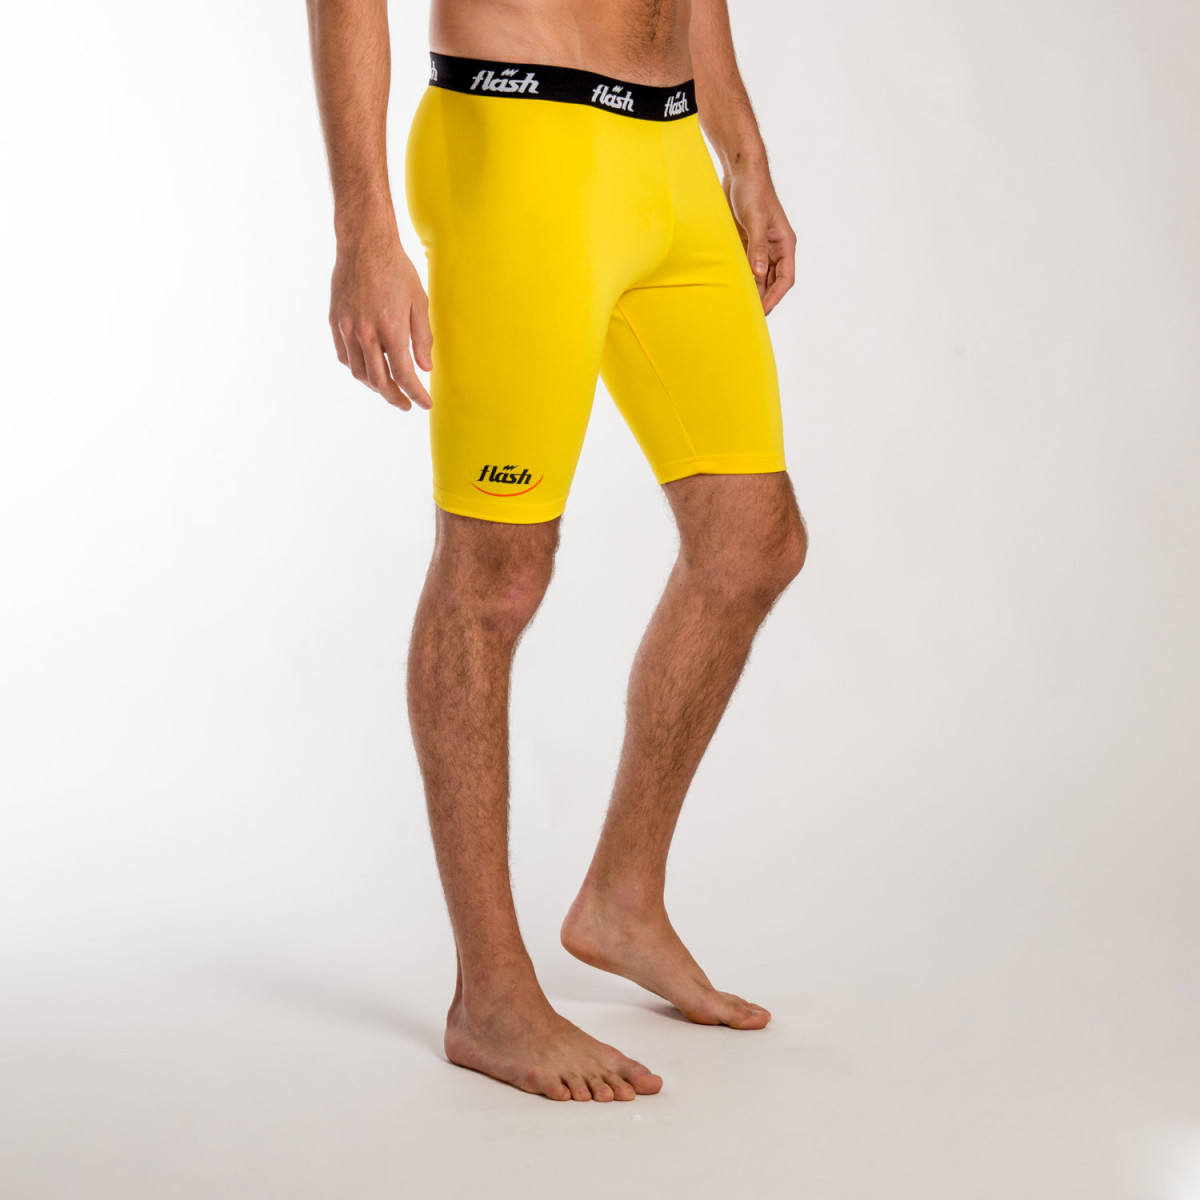 CALZA FLASH SPANDEX